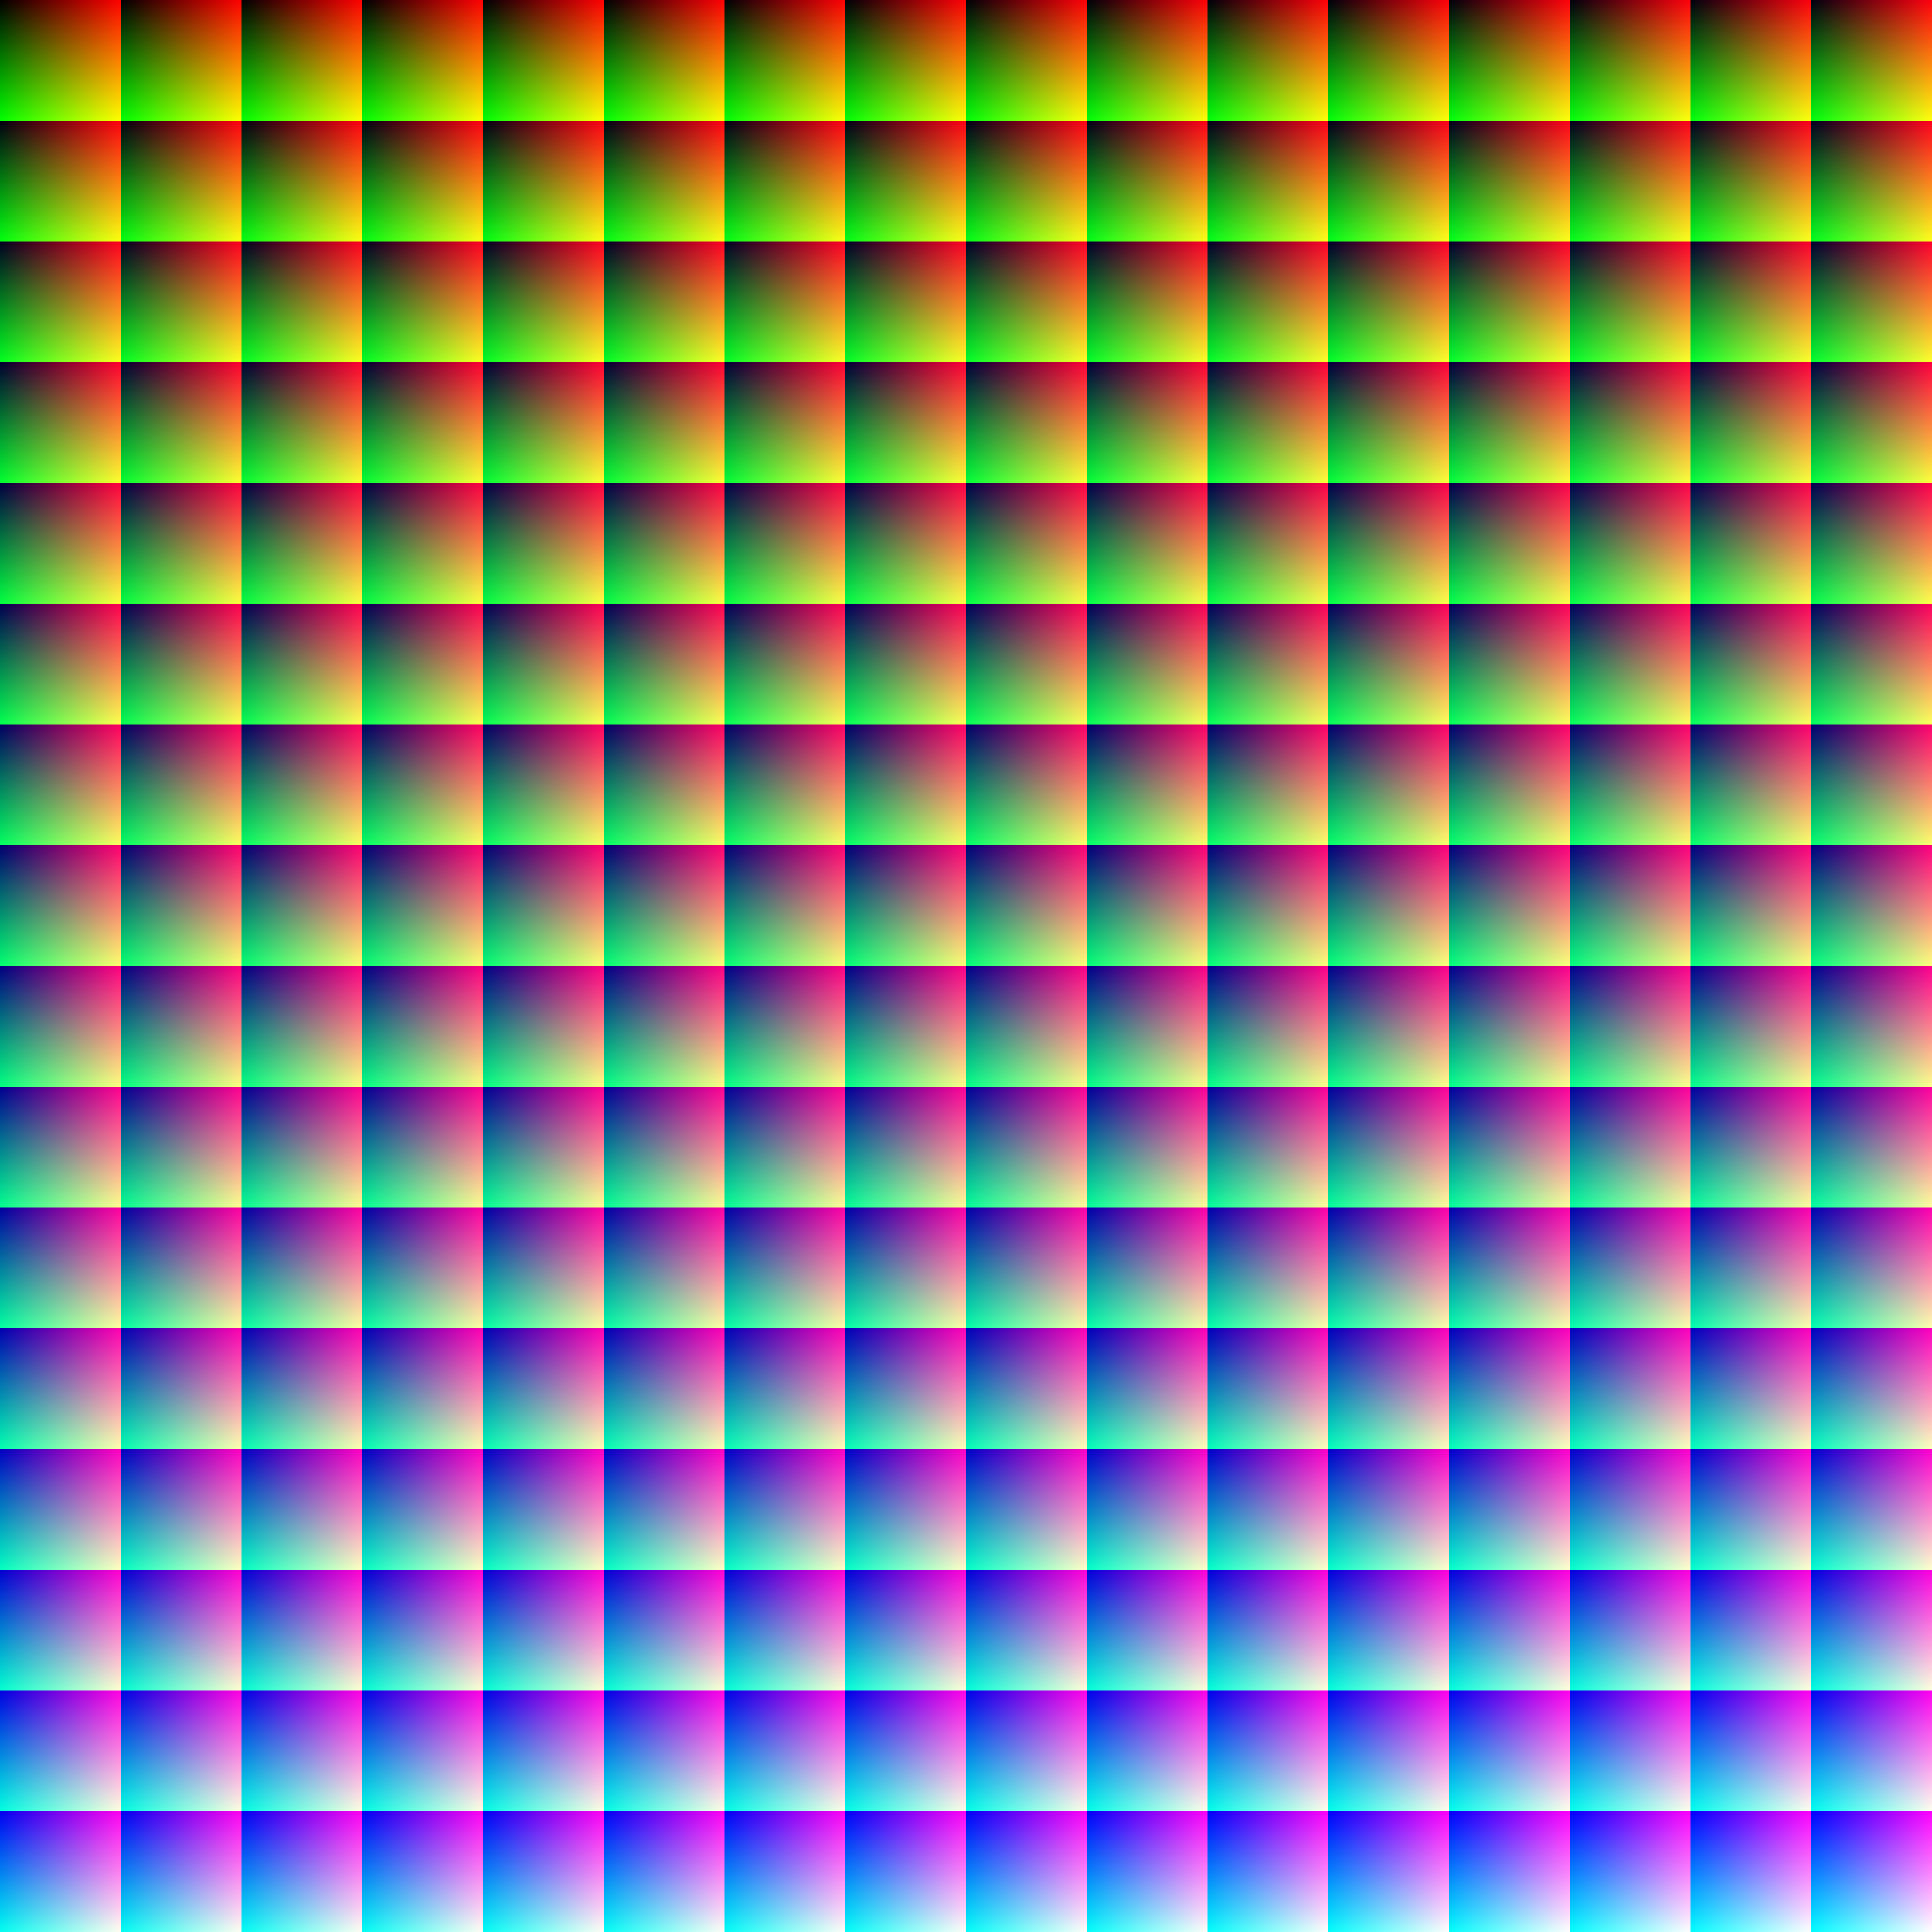 An Rgb Image Containing All Possible Colors